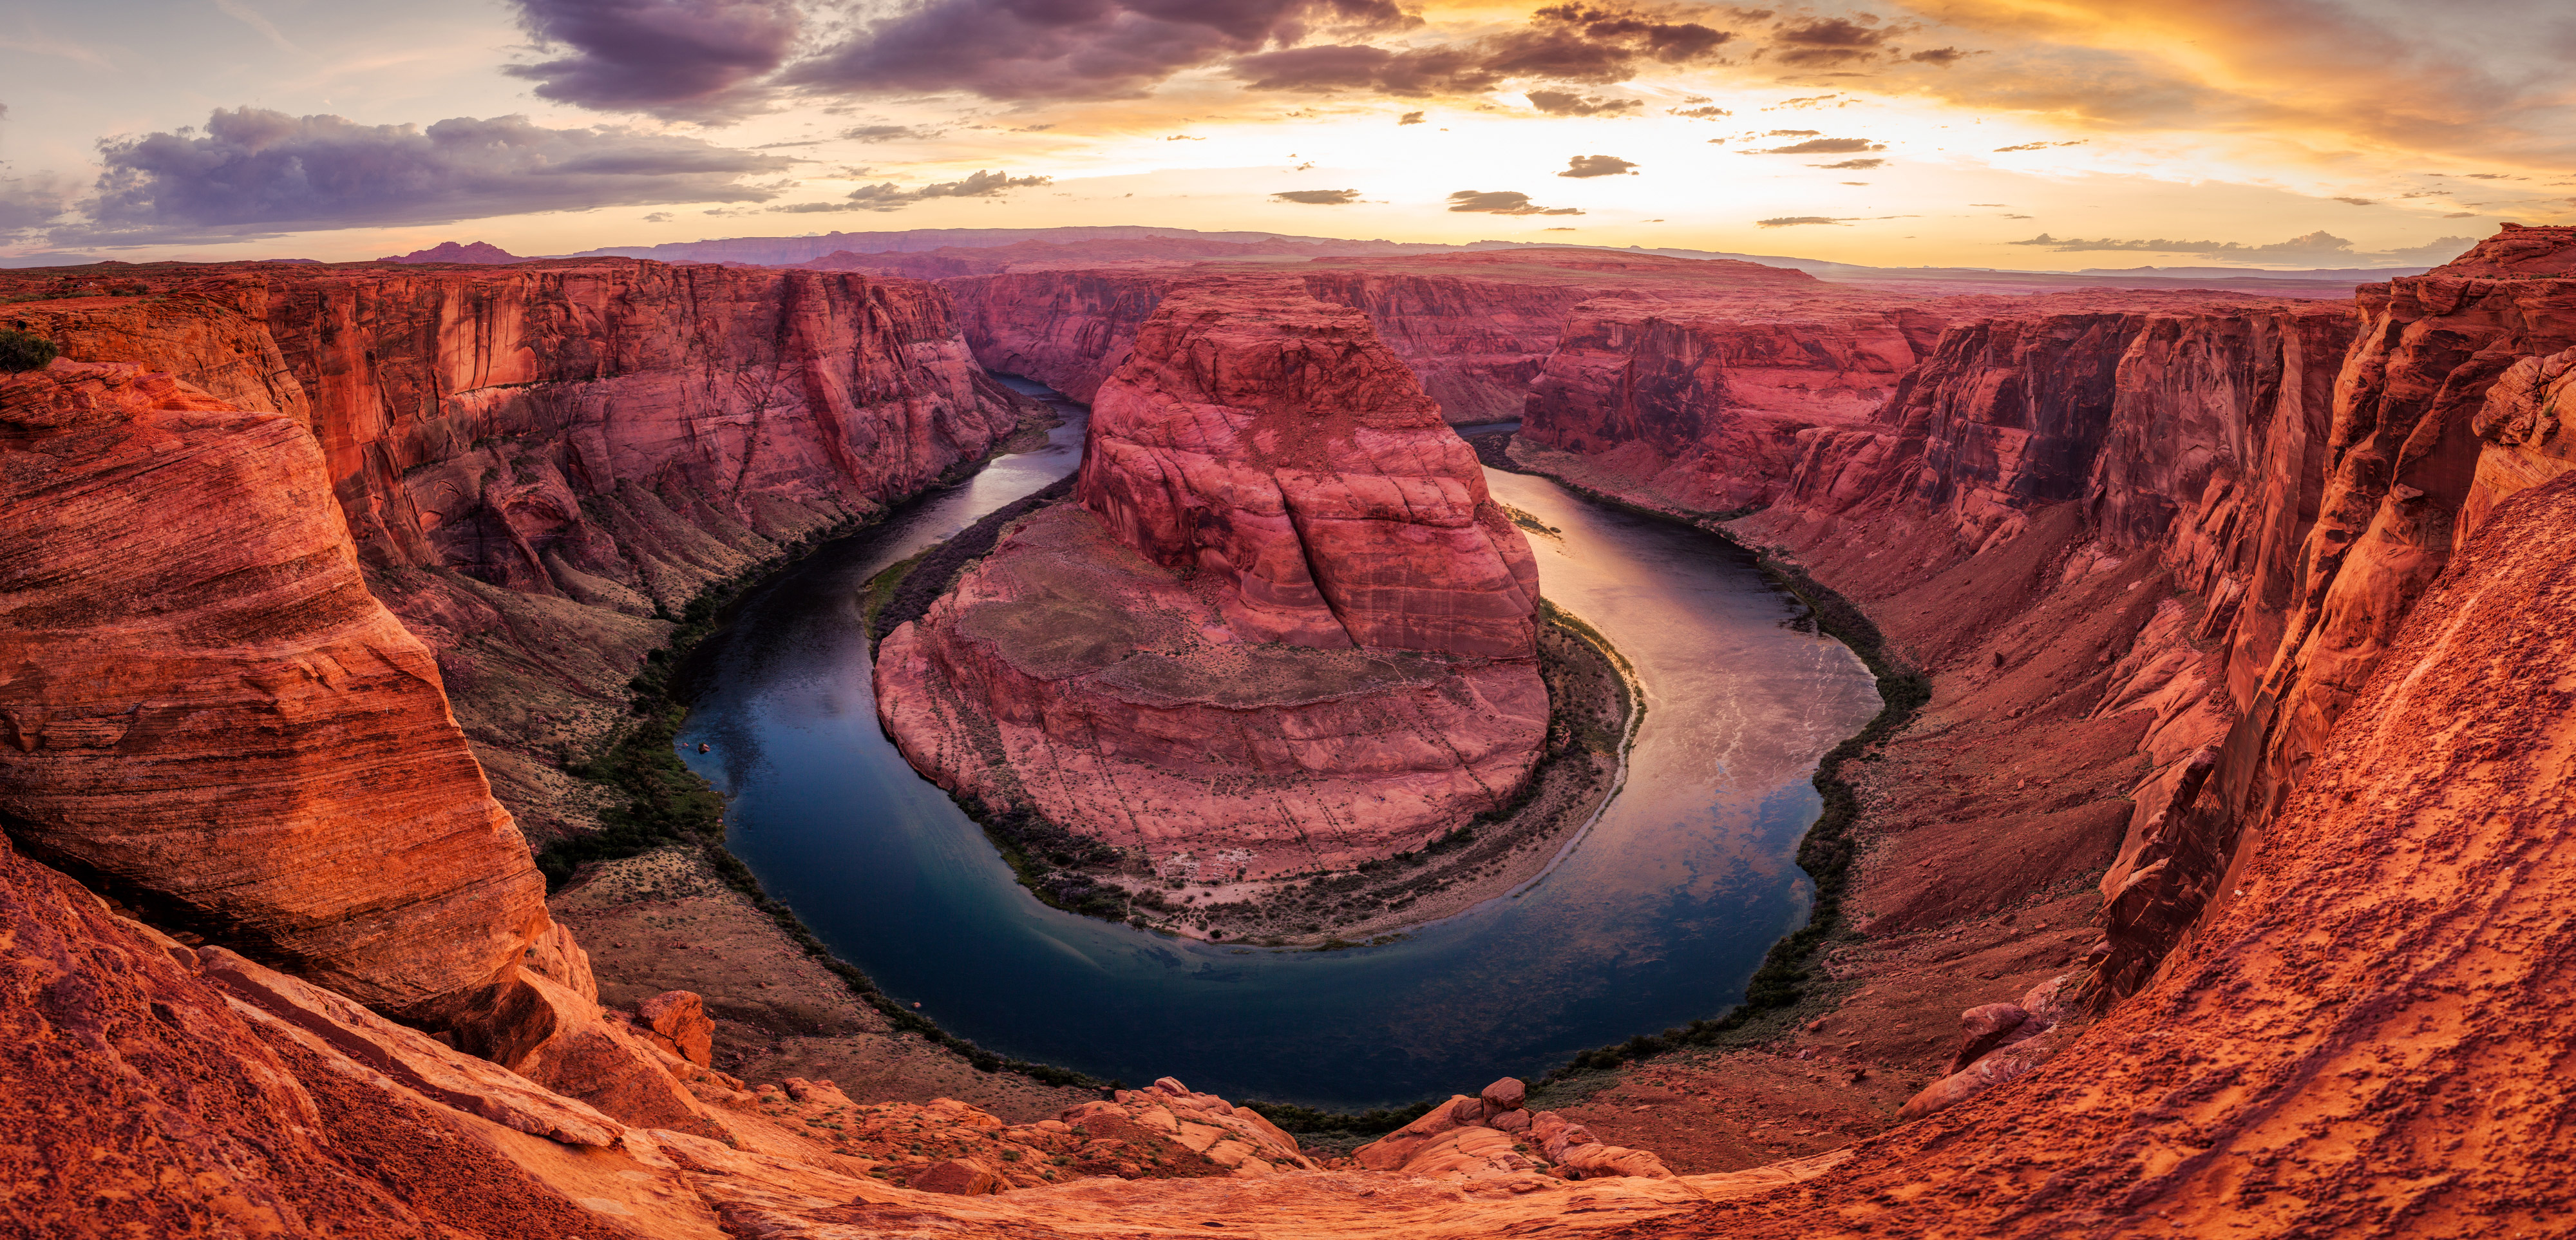 Horseshoe bend hd - photo#13